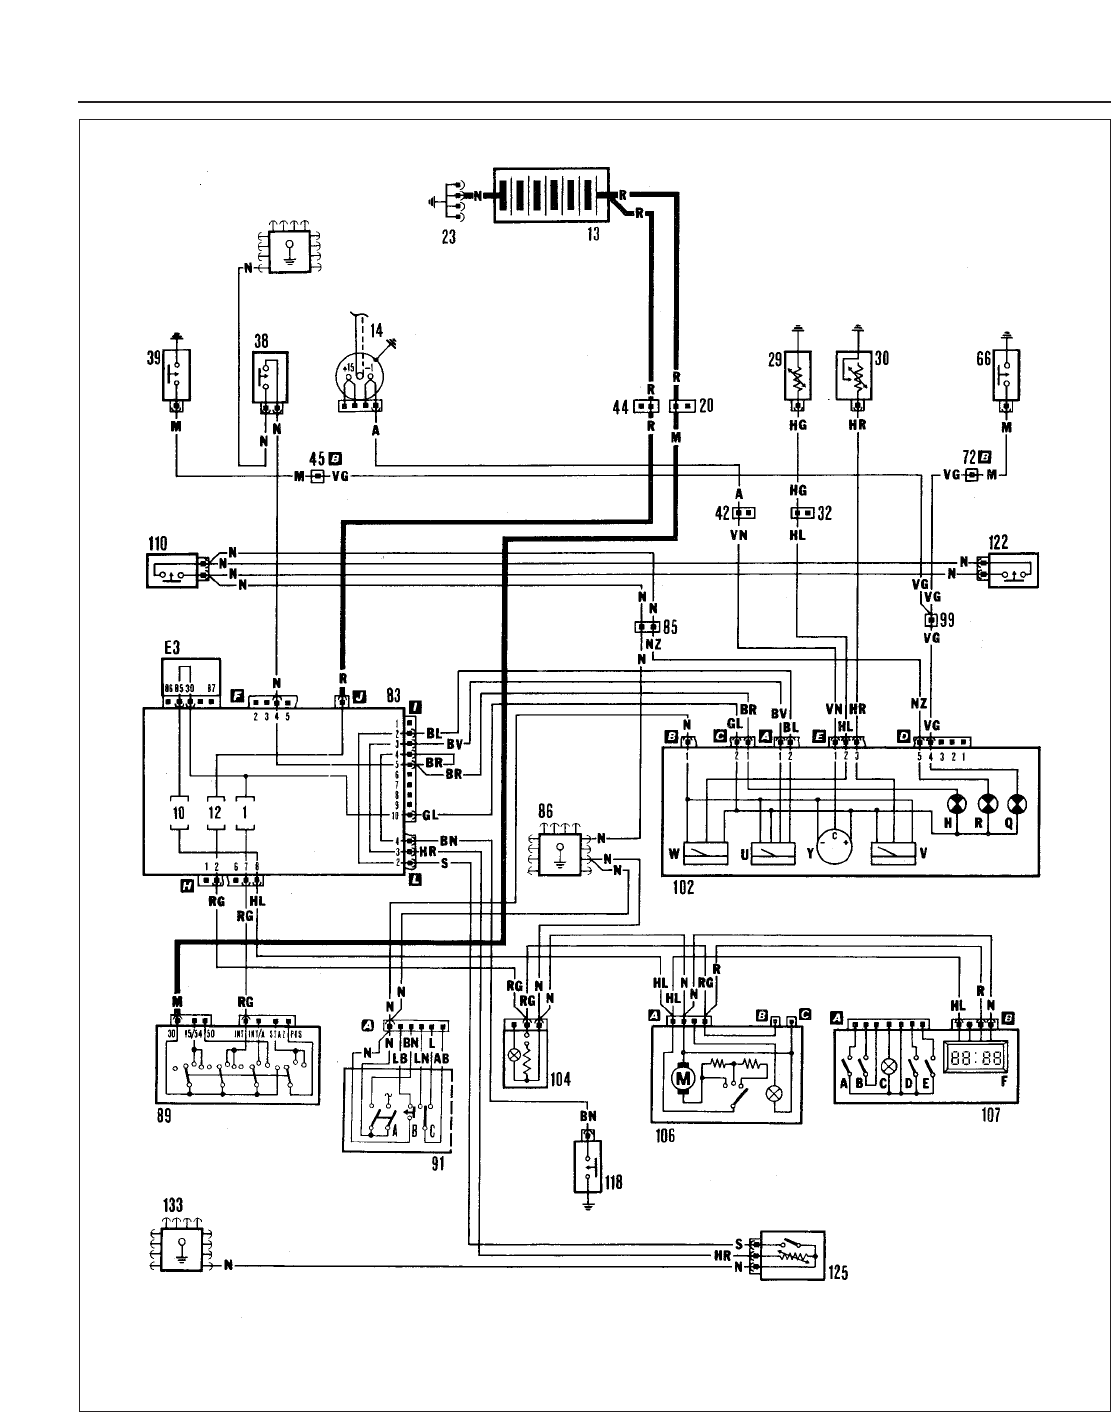 Wiring Diagram For 65 Plymouth 6 Diagrams Images Fiat Ducato 1997